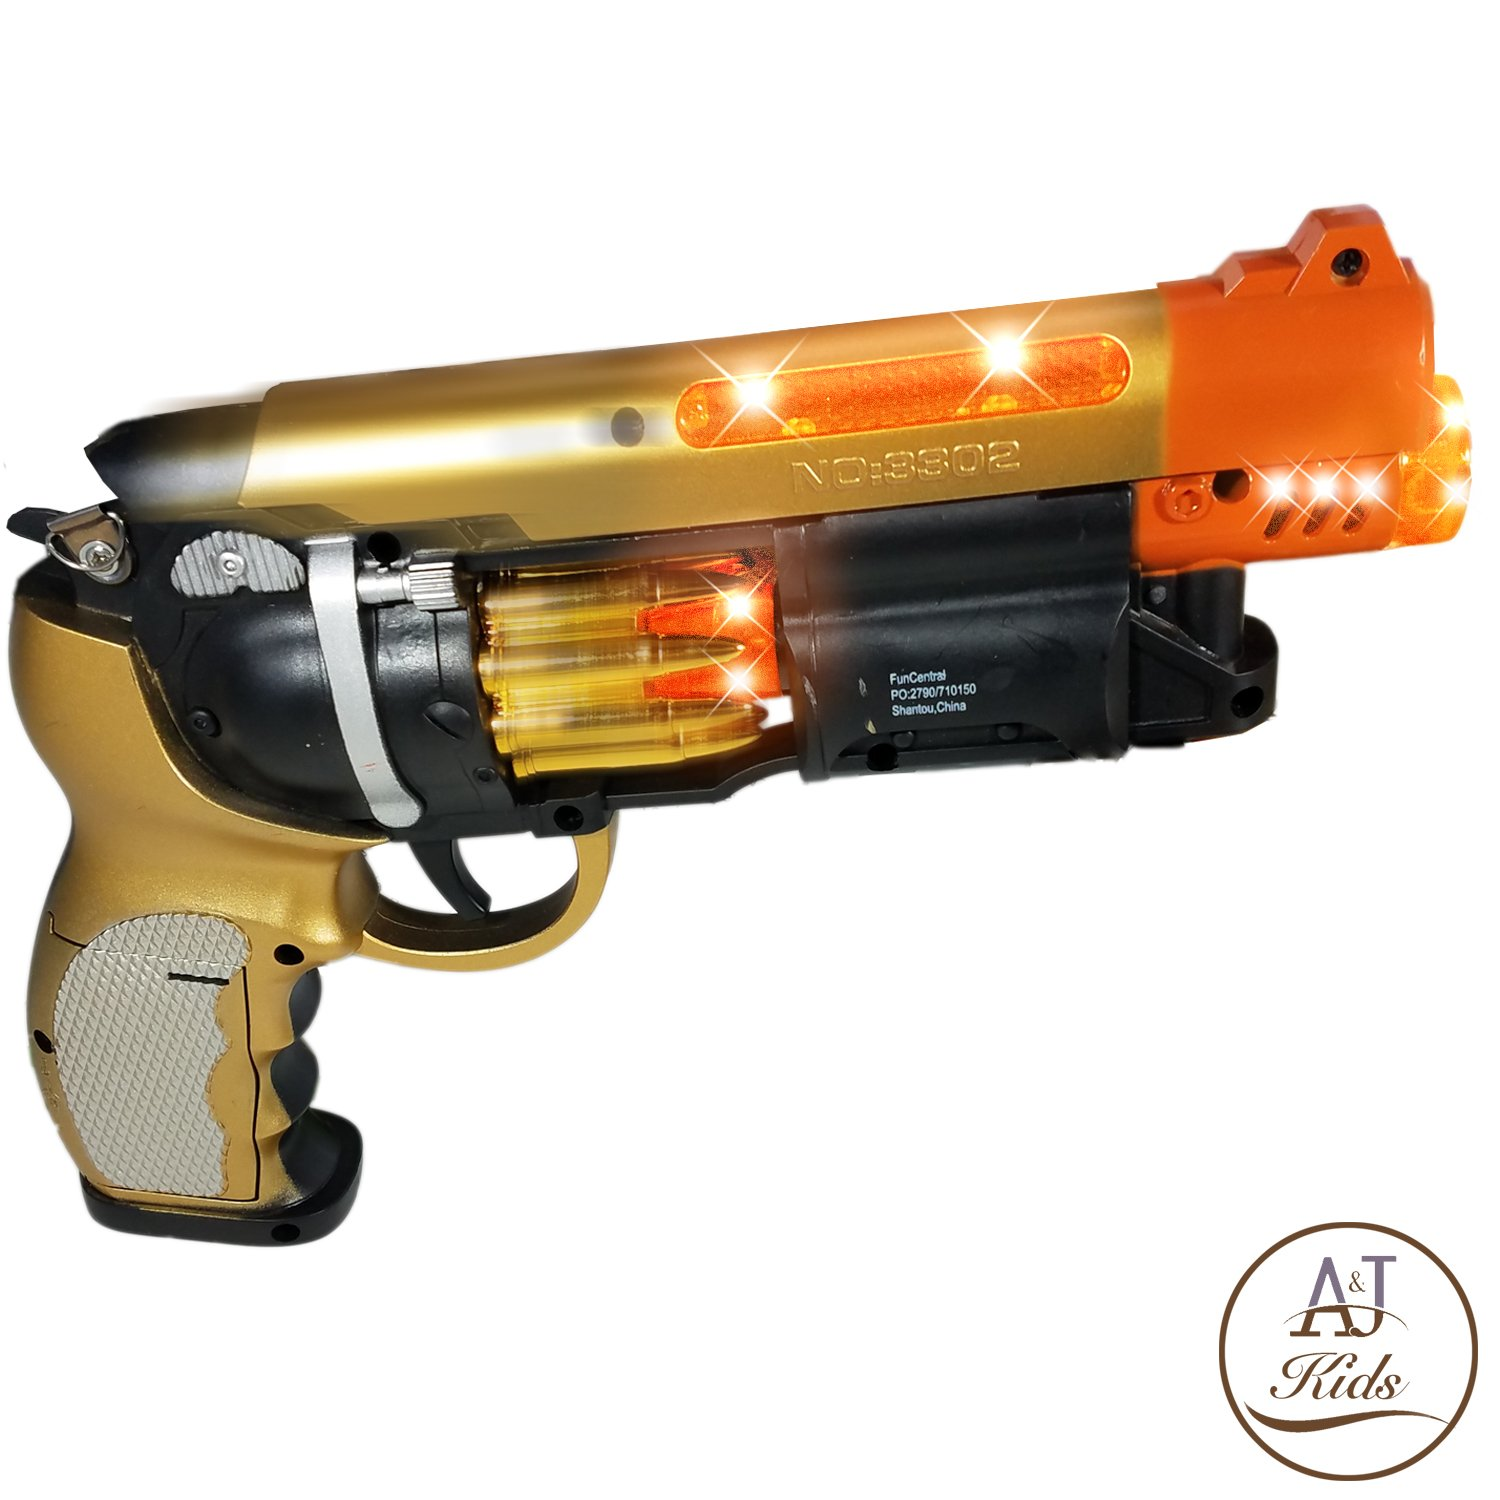 ANJ Kids Toys - Pretend Play Golden Blade Runner Style Toy Guns for Boys | Toy Pistol Gun with Sound and Flashing Lights | Detailed Craft with Rapid Firing, Barrel Vibrating and Cylinder Revolving